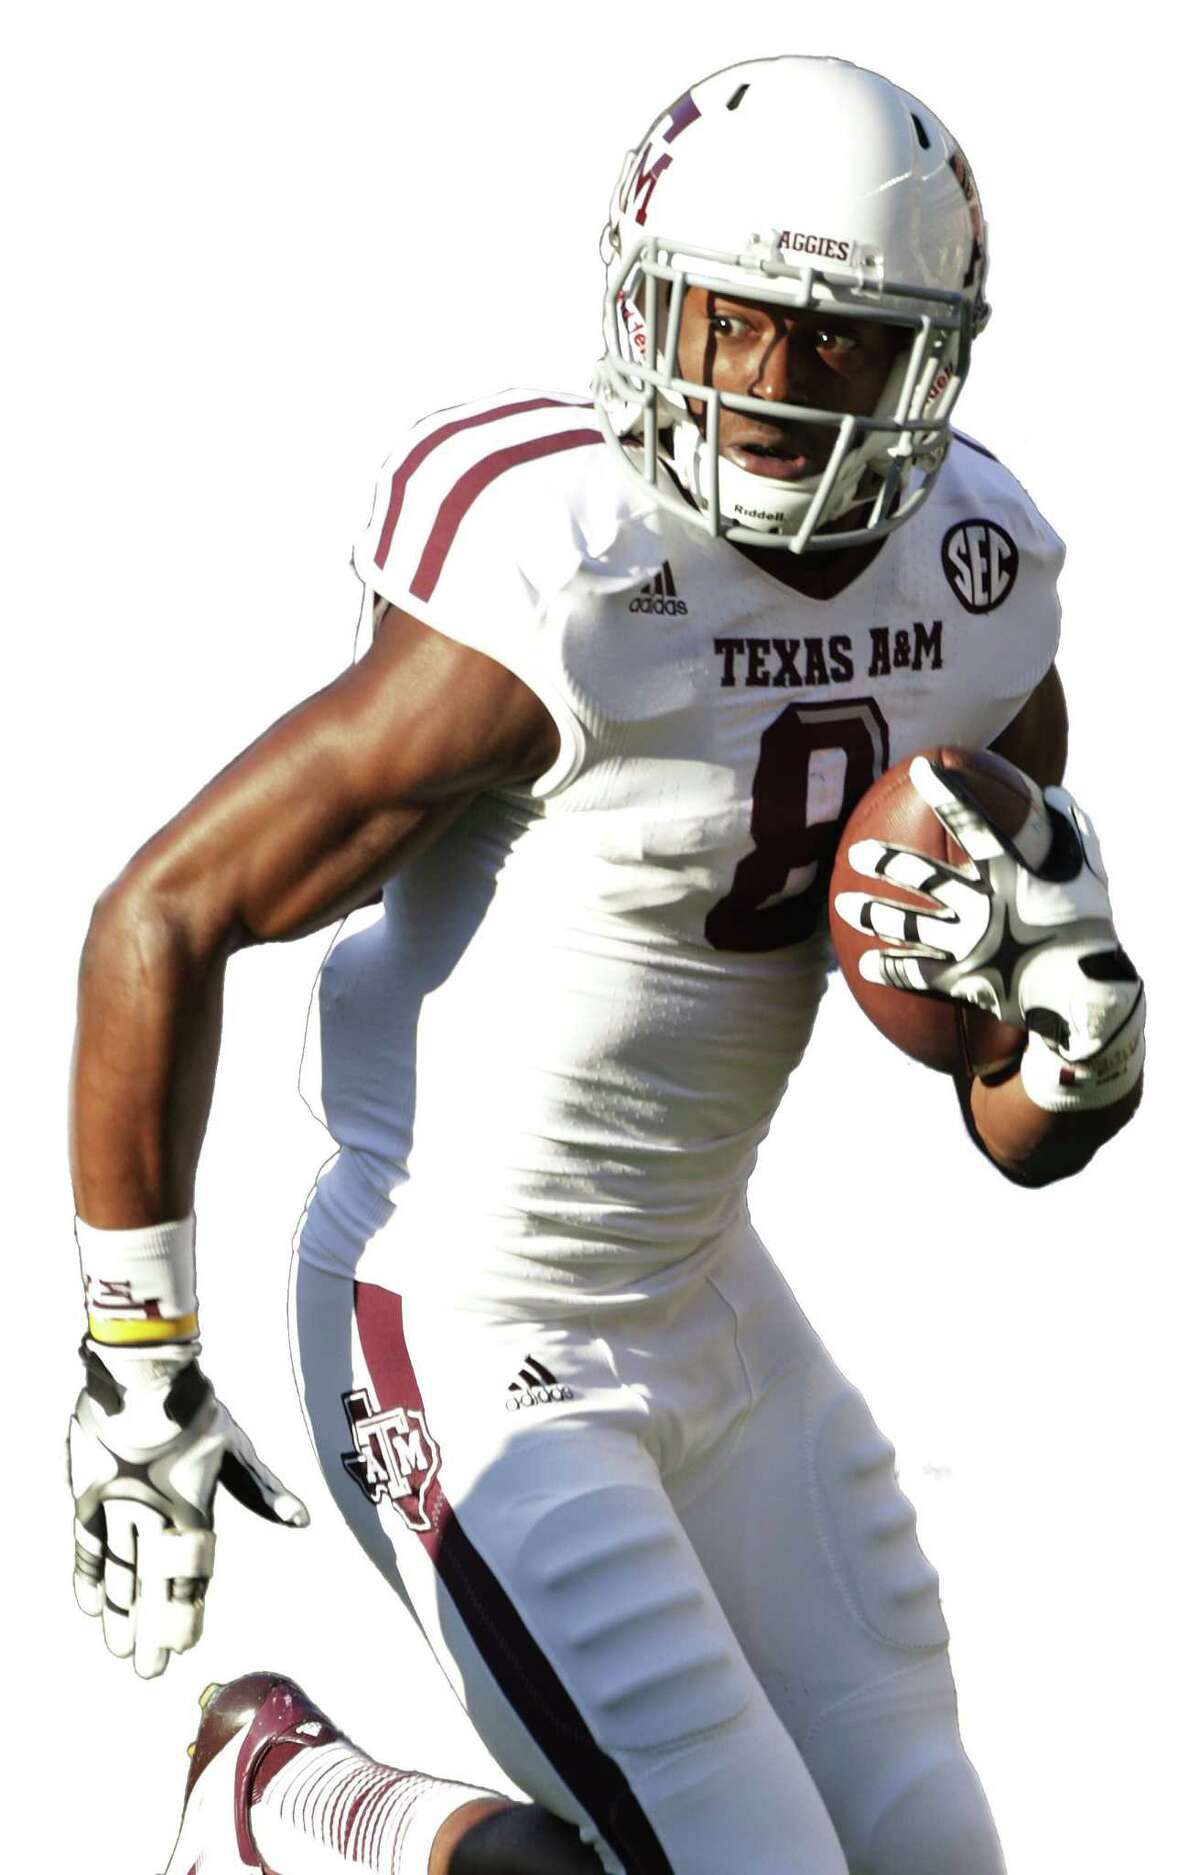 Johnson's mother vows he'll return to play football - but not at A&M.